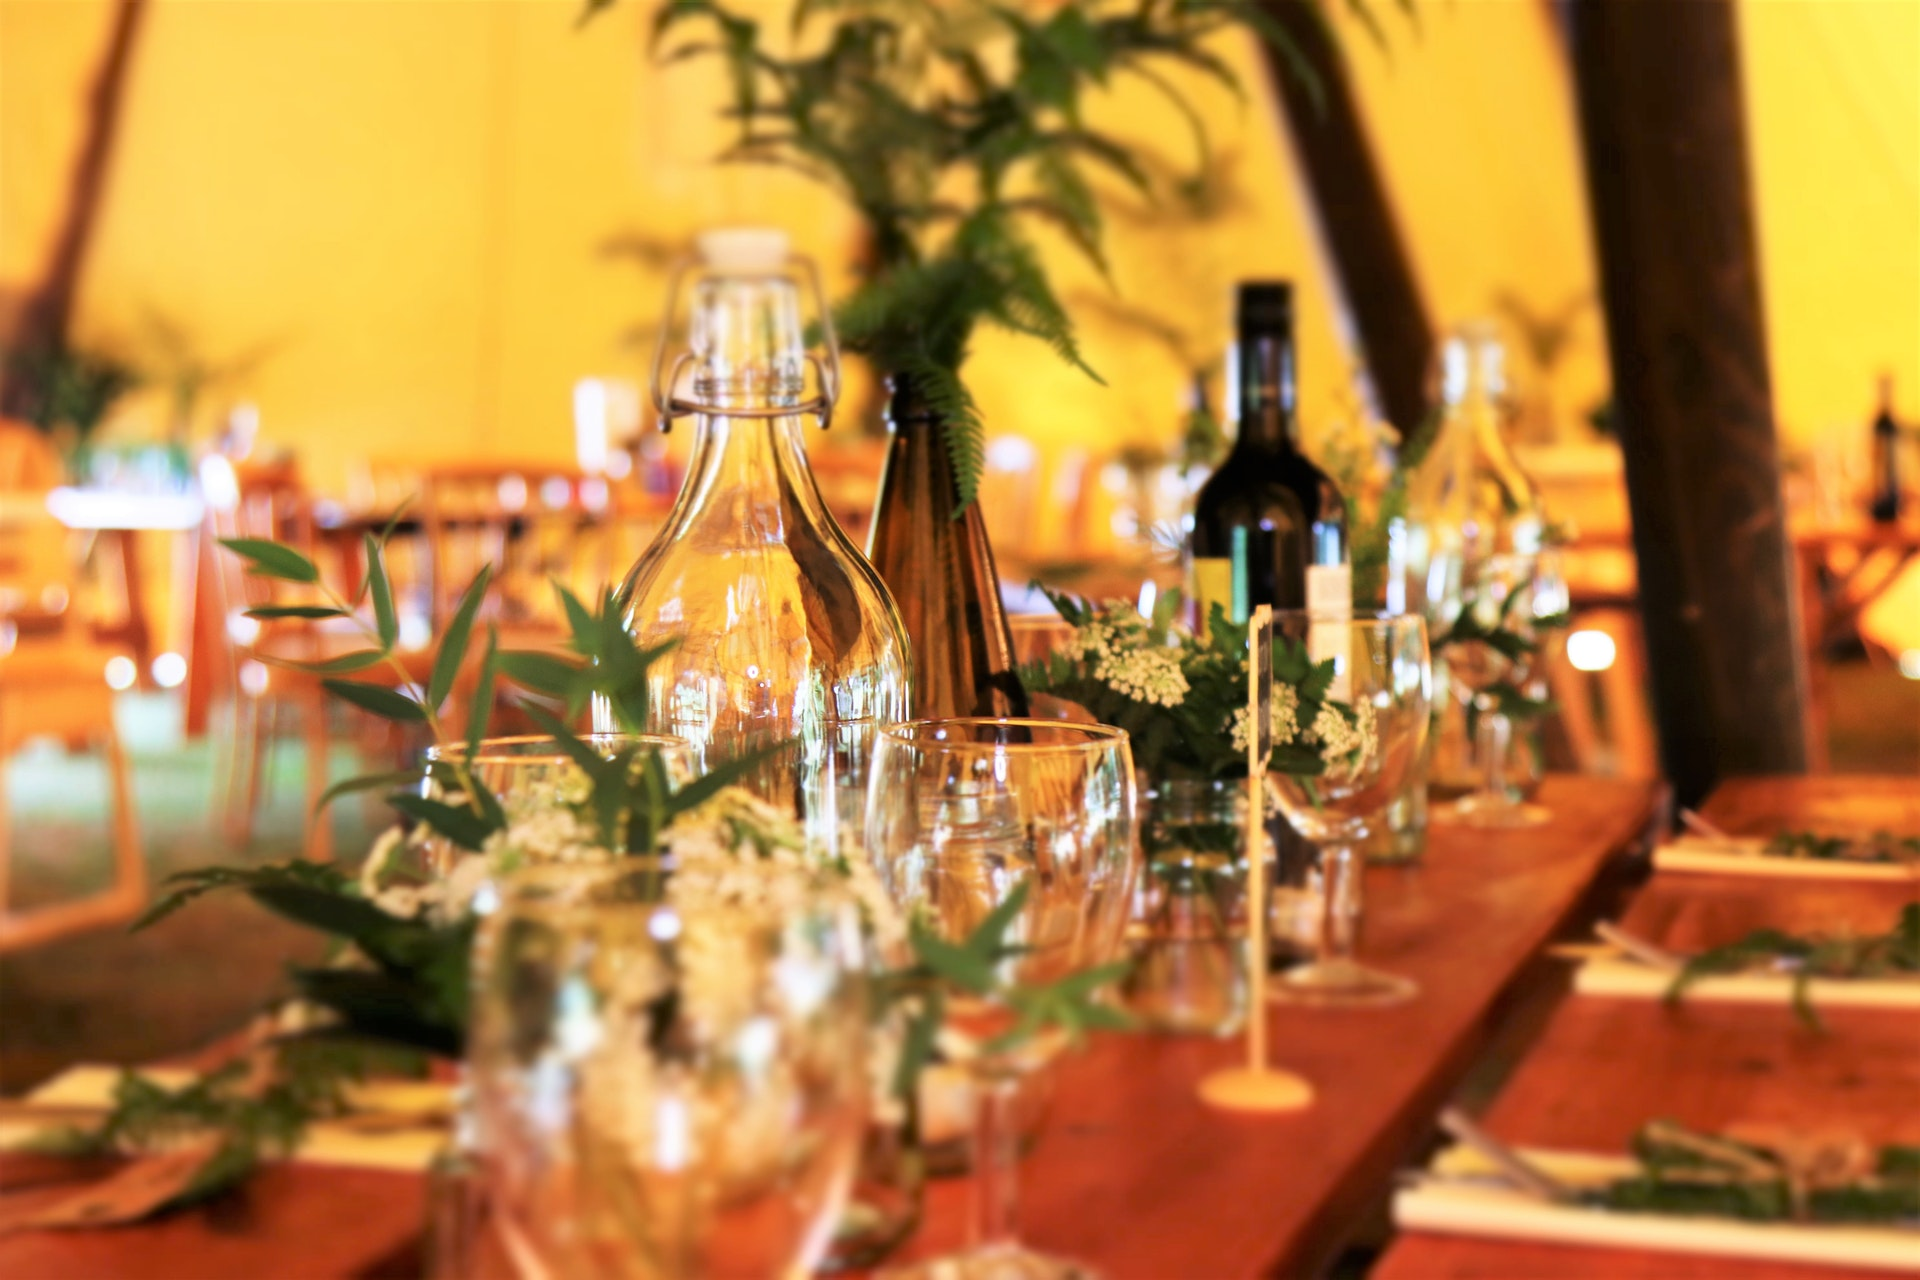 Table laid out for an event